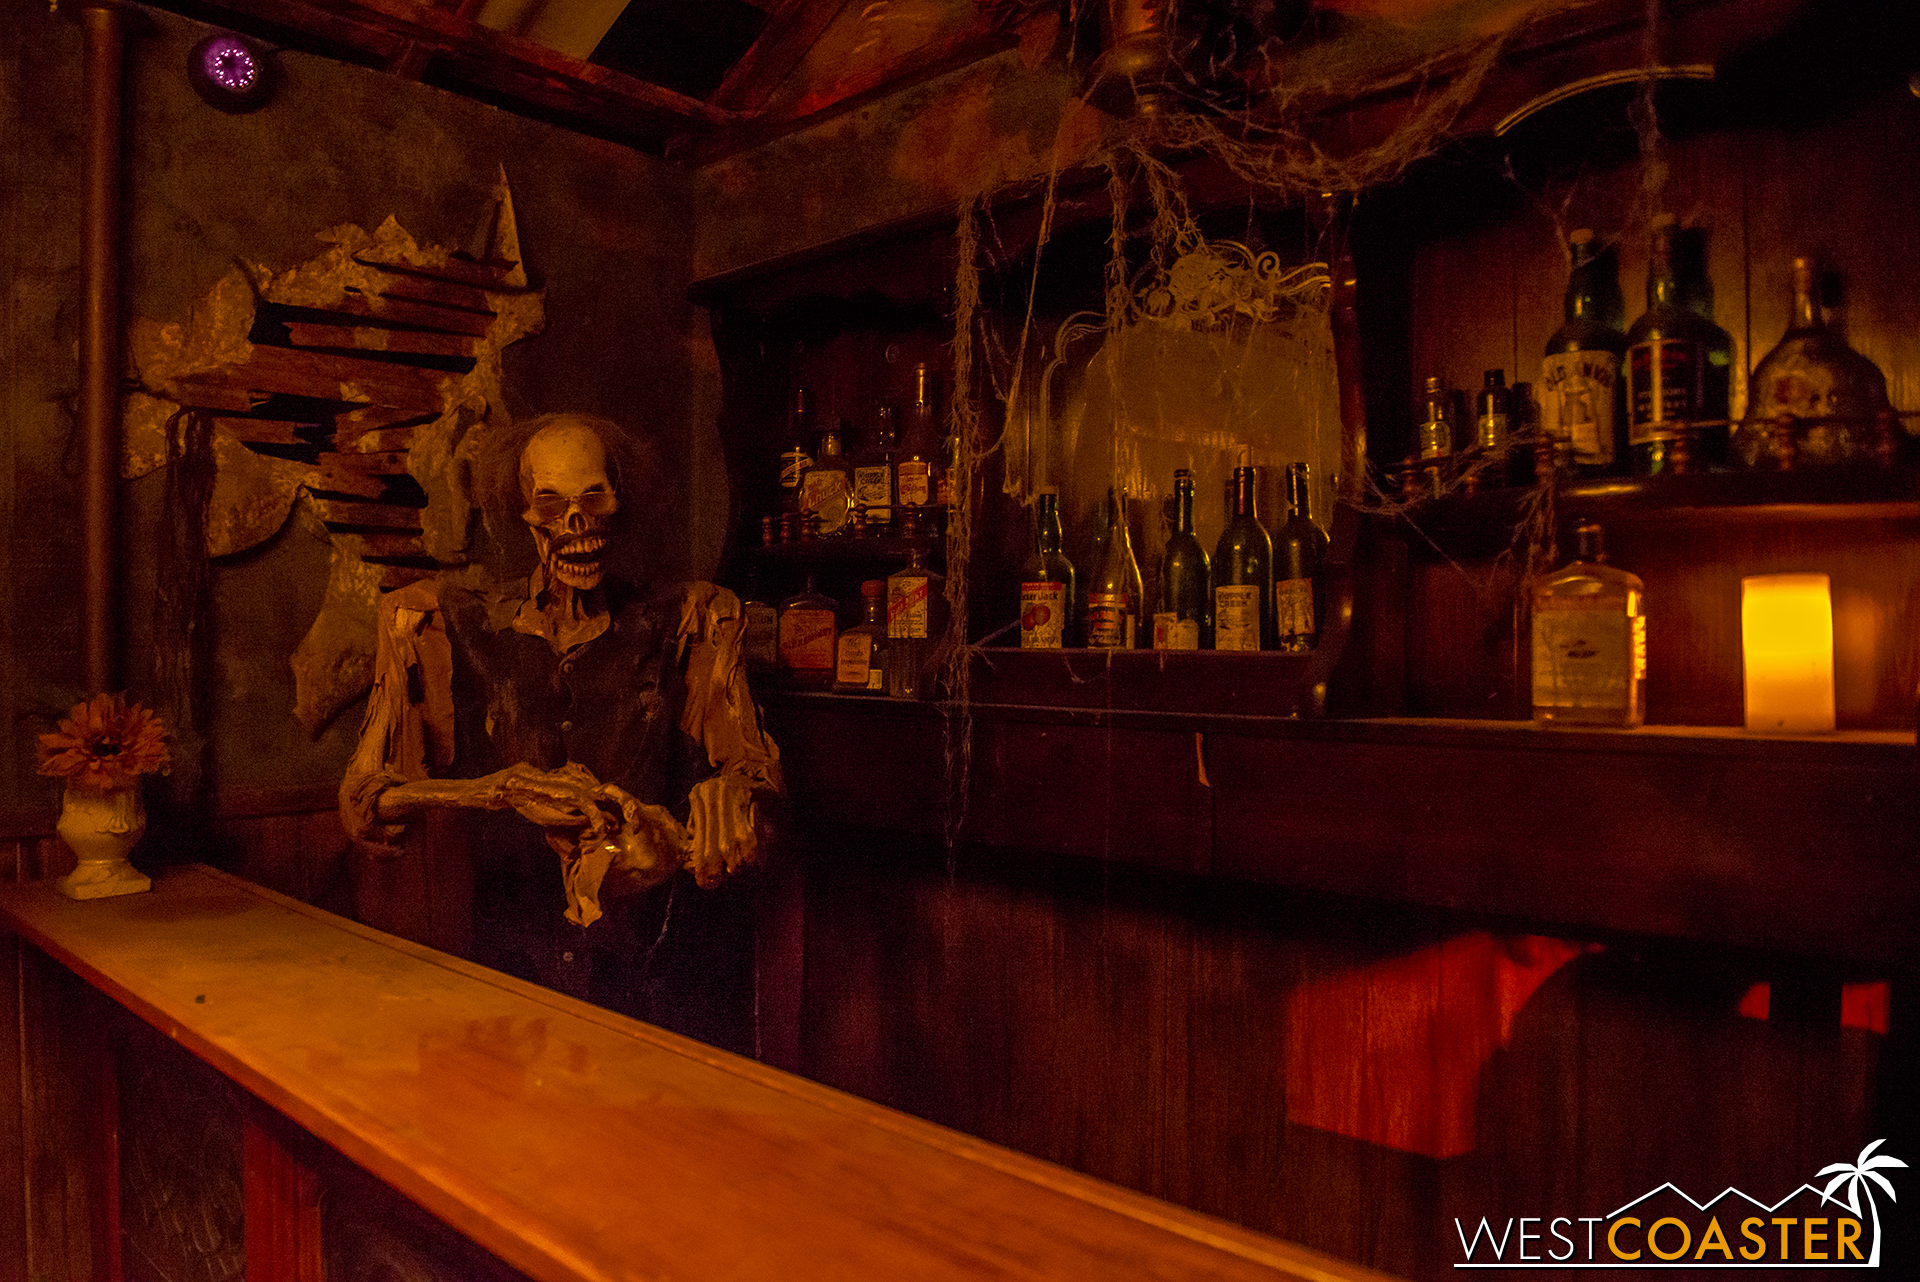 Fancy a drink to calm the nerves before this haunt? Too bad, it's not a real bar. But it looks great!